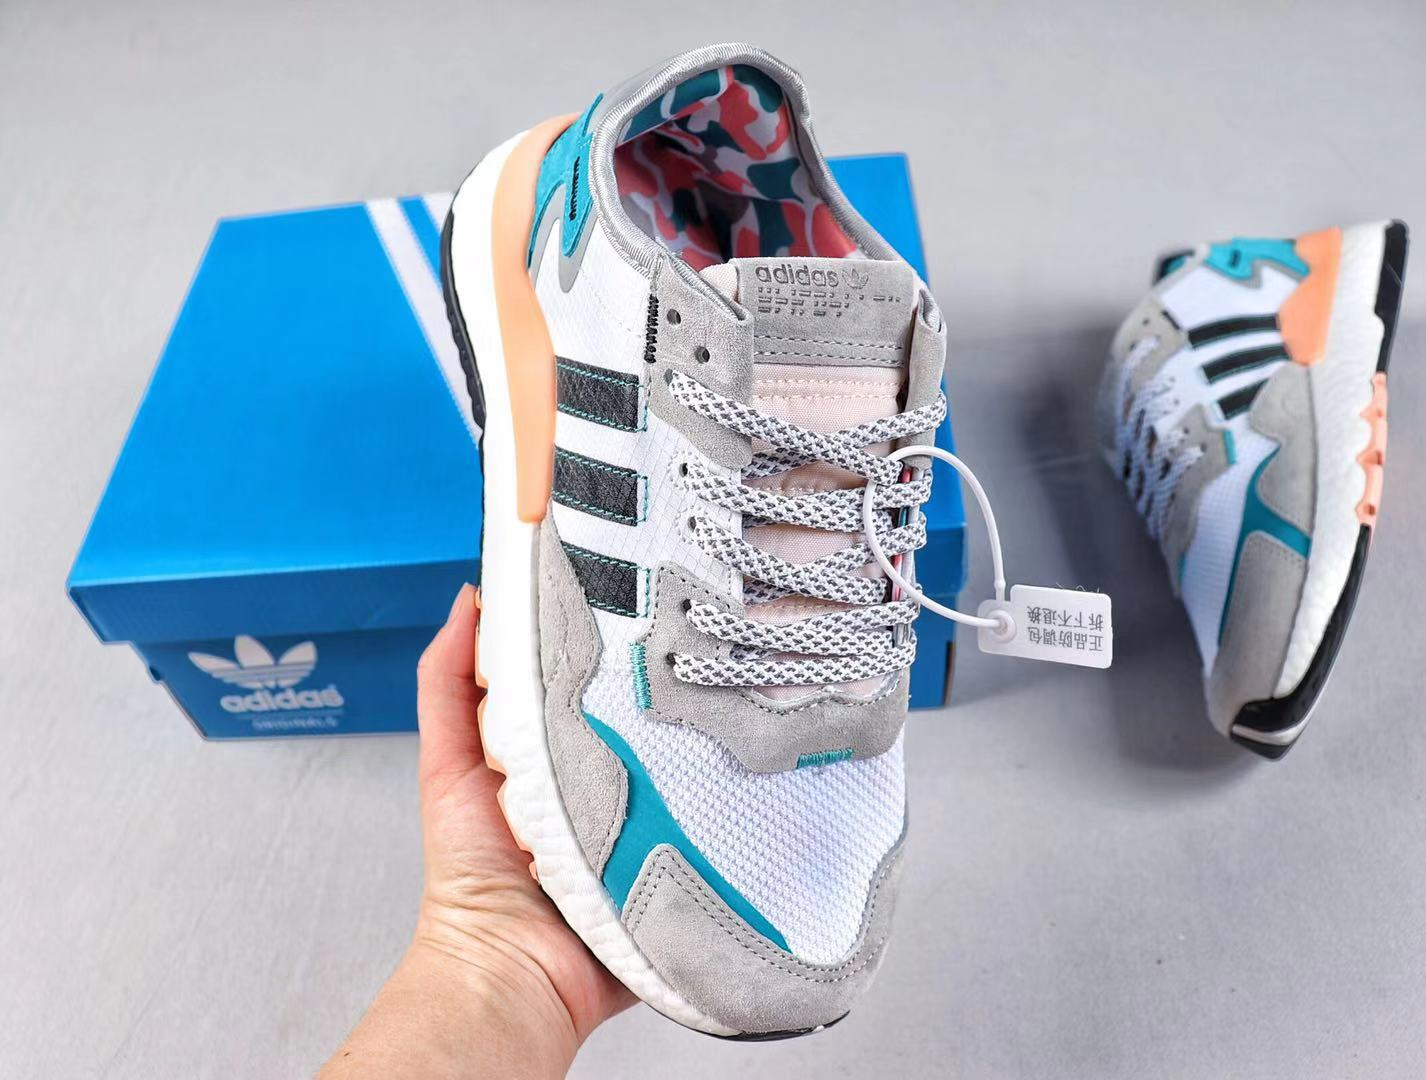 Adidas Nite Jogger FV3852 Wolf Grey/White-Lake Blue Top Shoes Online Sale